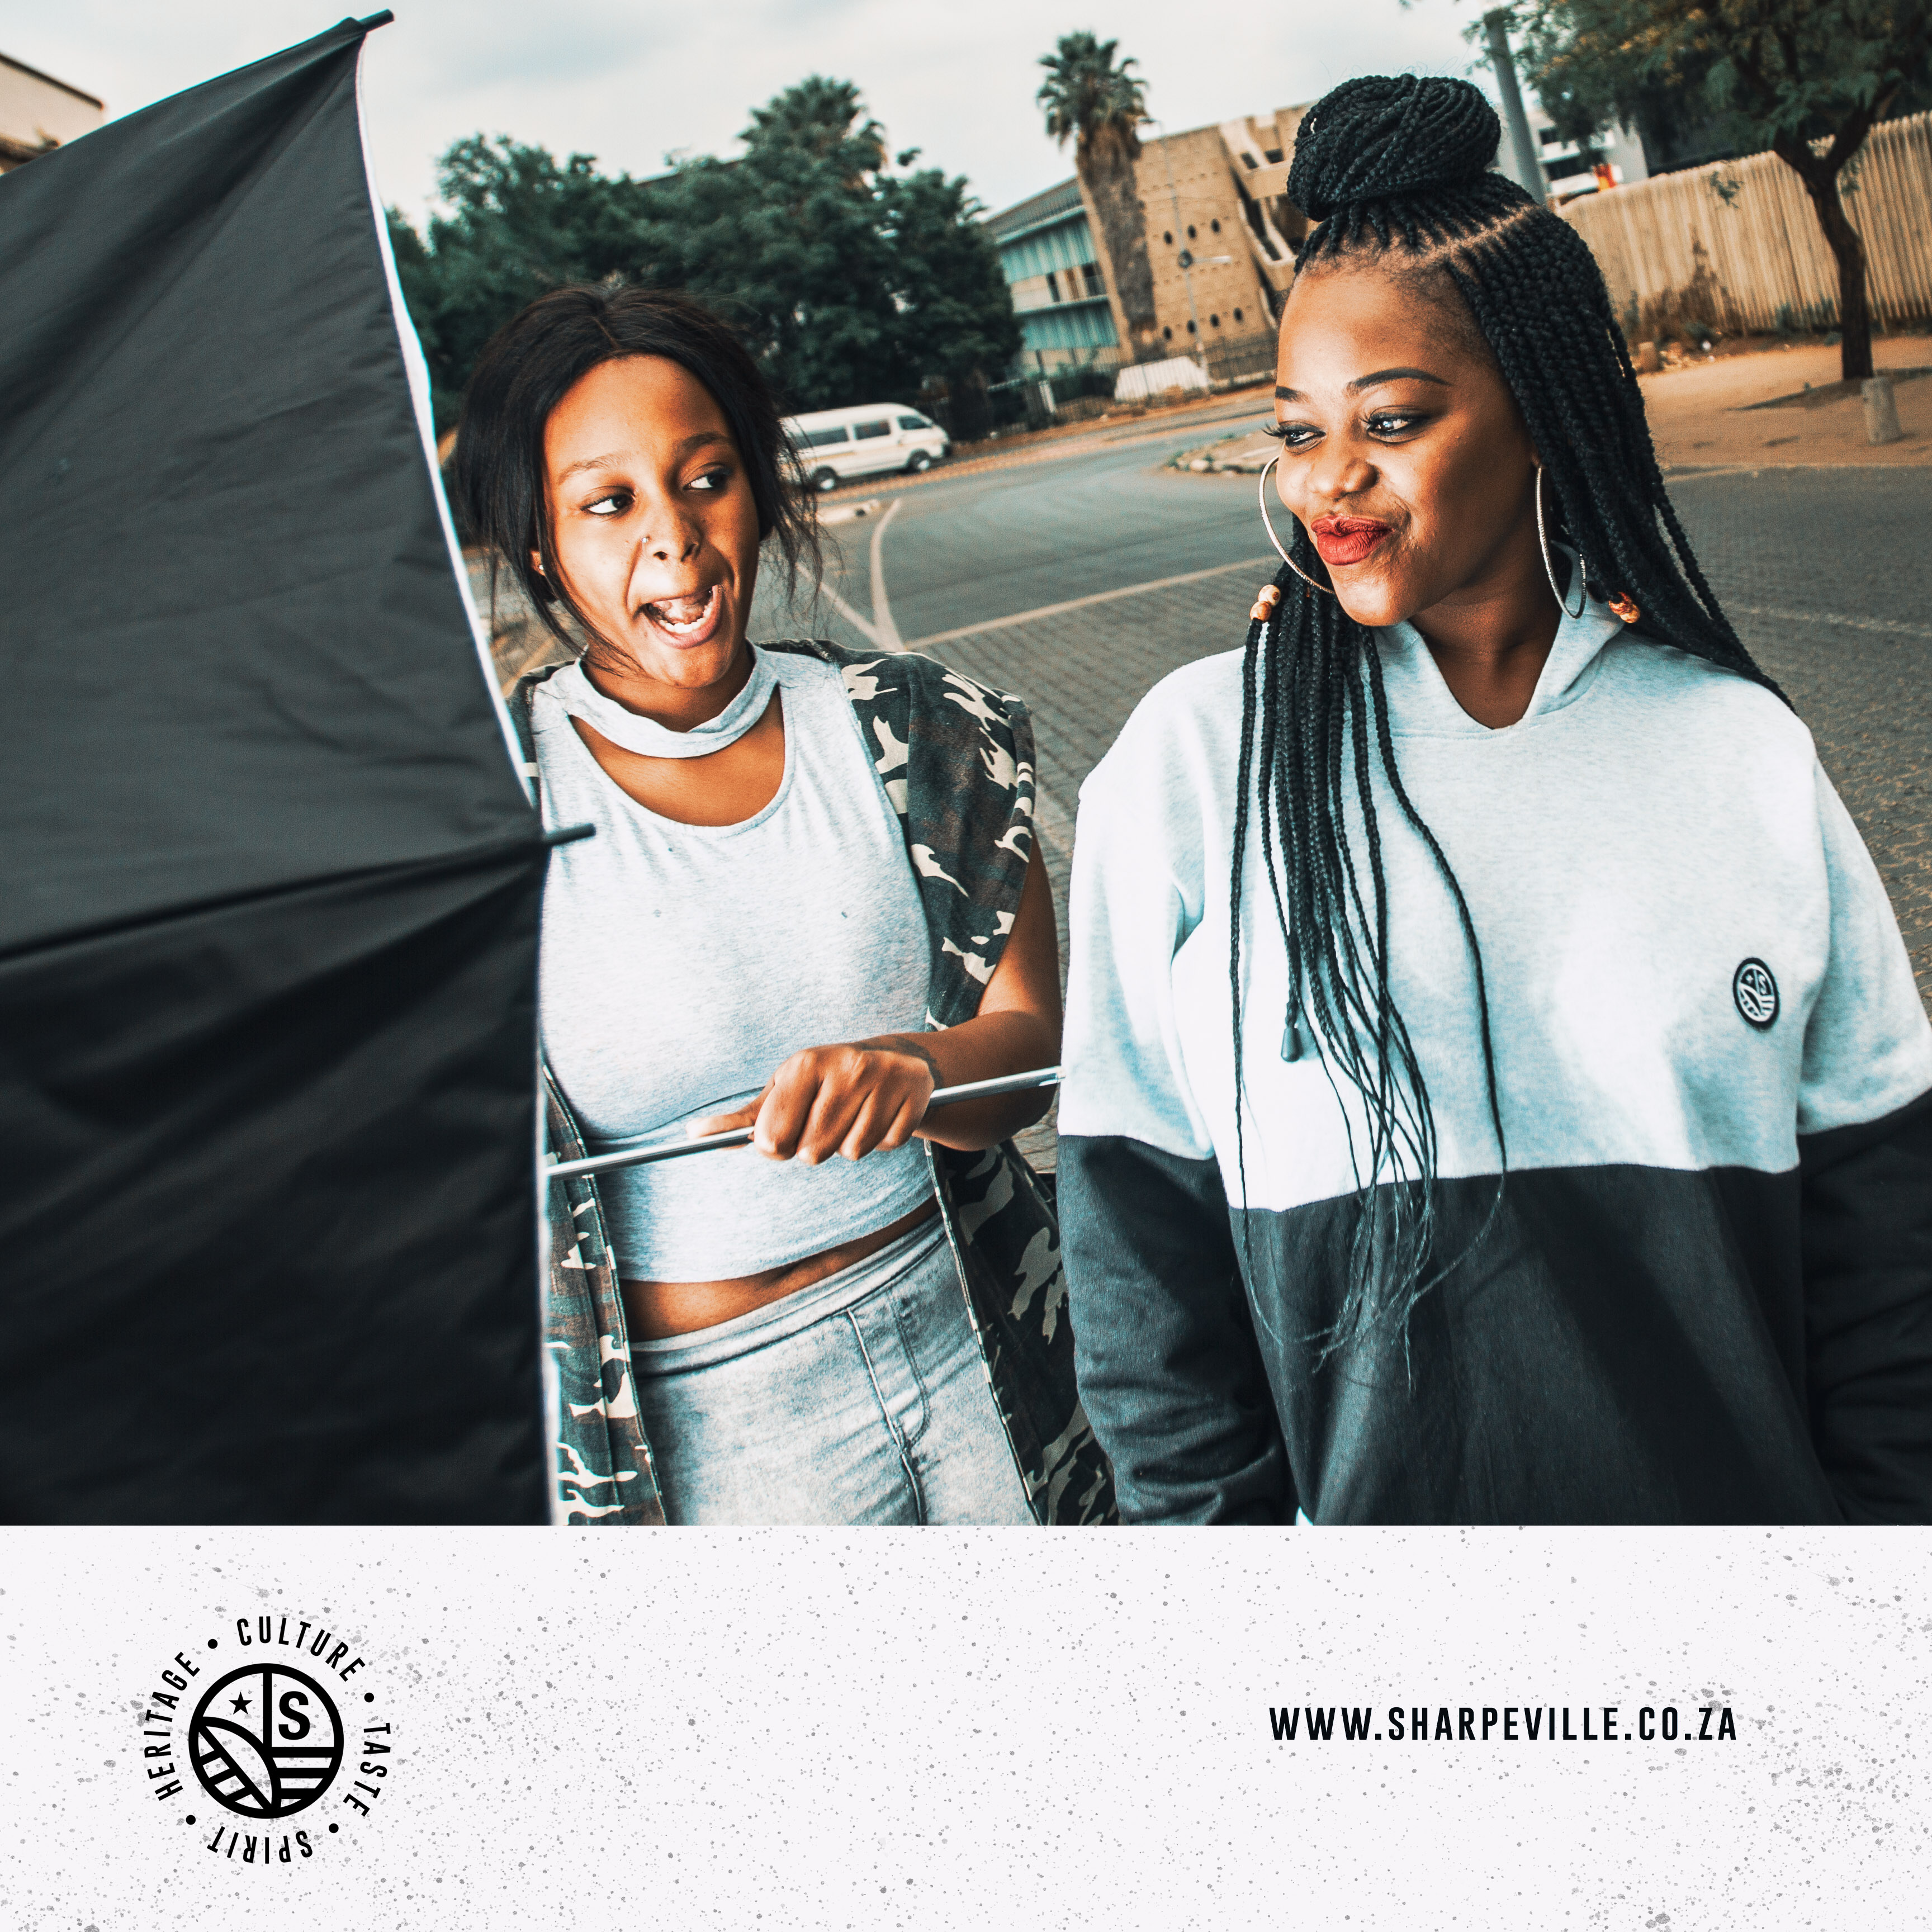 A sharpeville website banner with two ladies walking in the street in Sharpeville